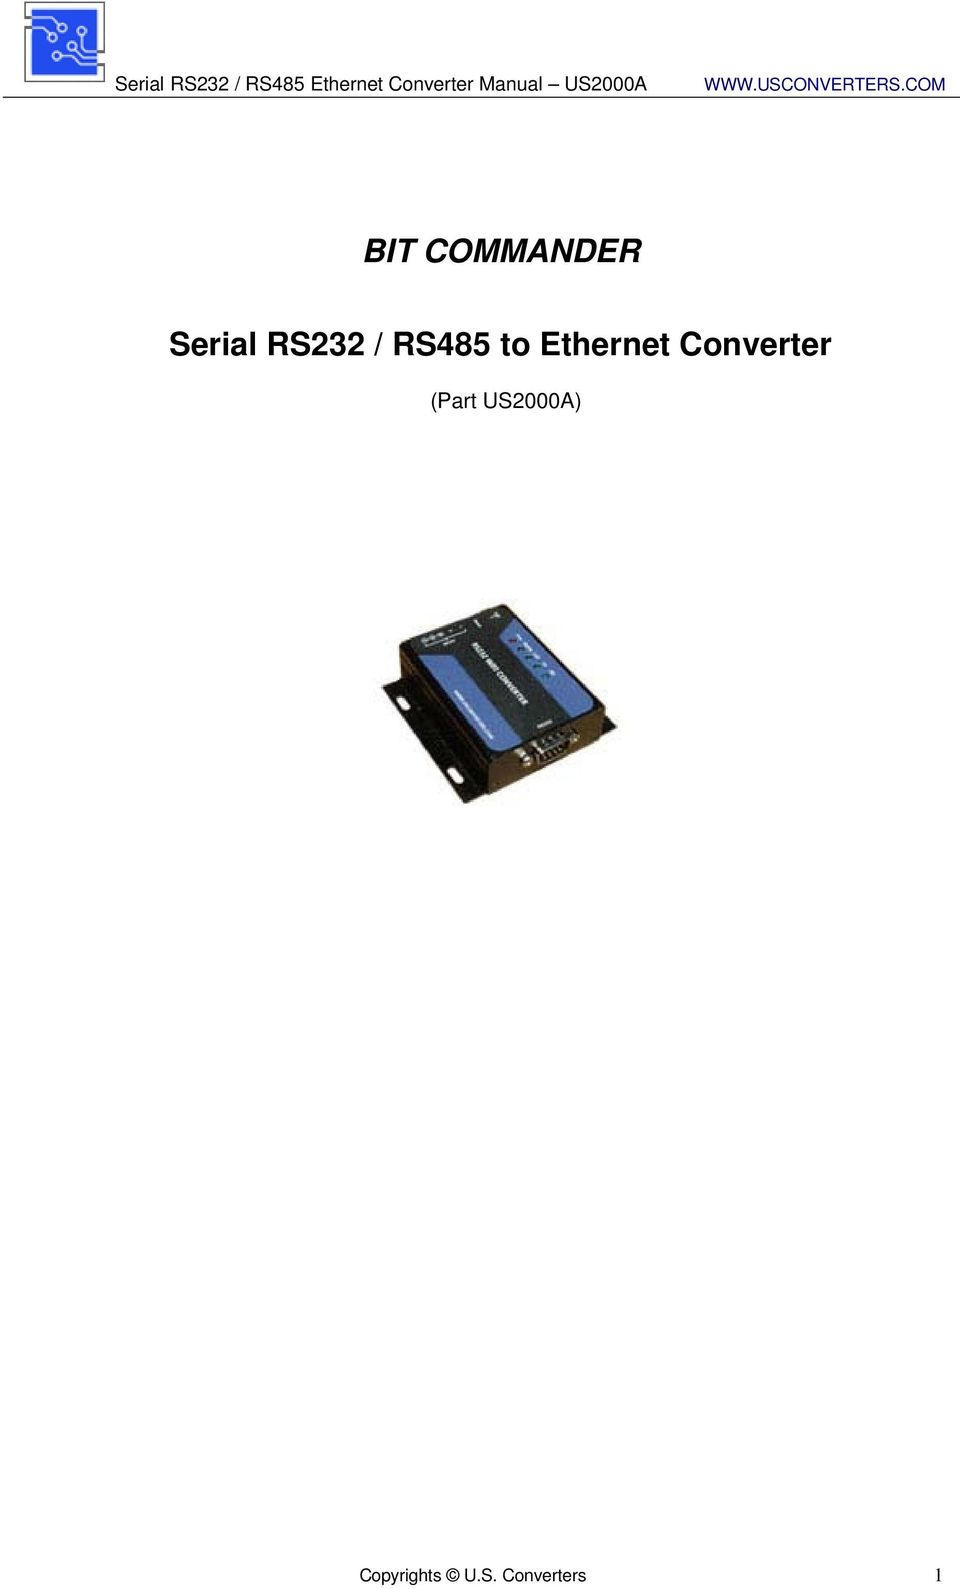 Ethernet Converter (Part